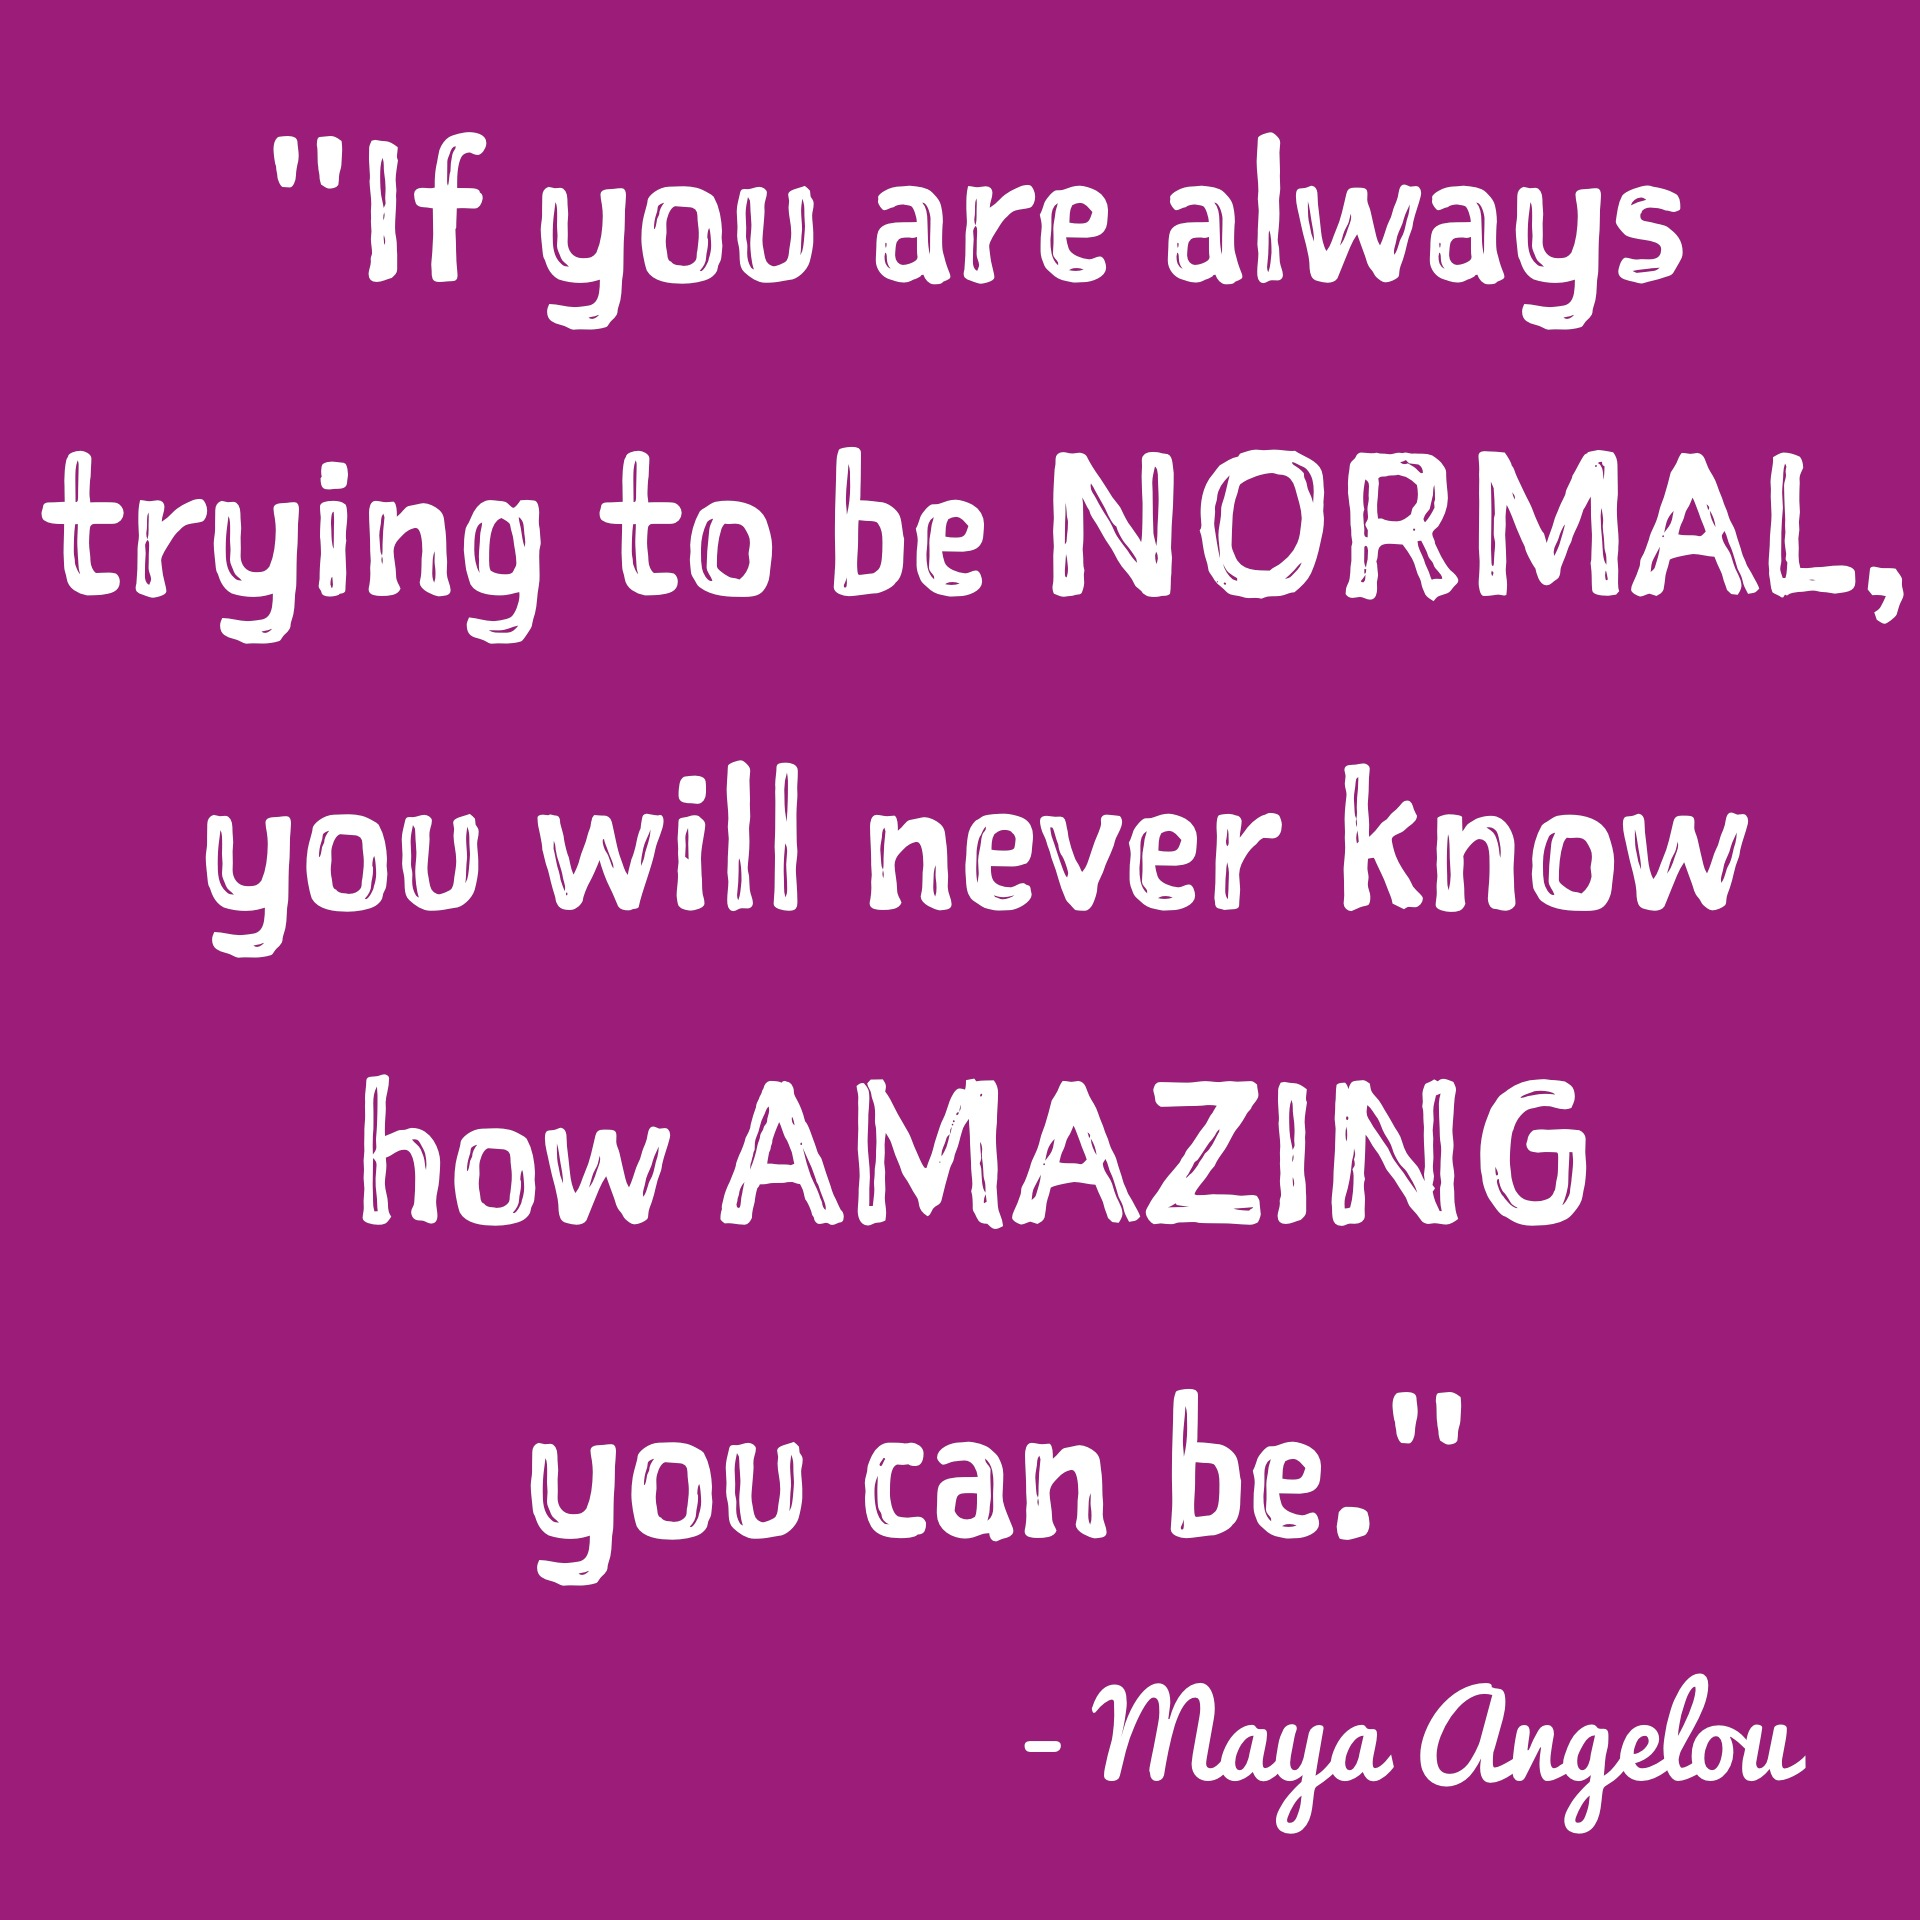 inspirational-quotes-inspiring-quotes-potential-quotes-inner-voice-quotes-if-you-are-always-trying-to-be-normal-you-will-never-know-how-amazing-you-can-be.jpg